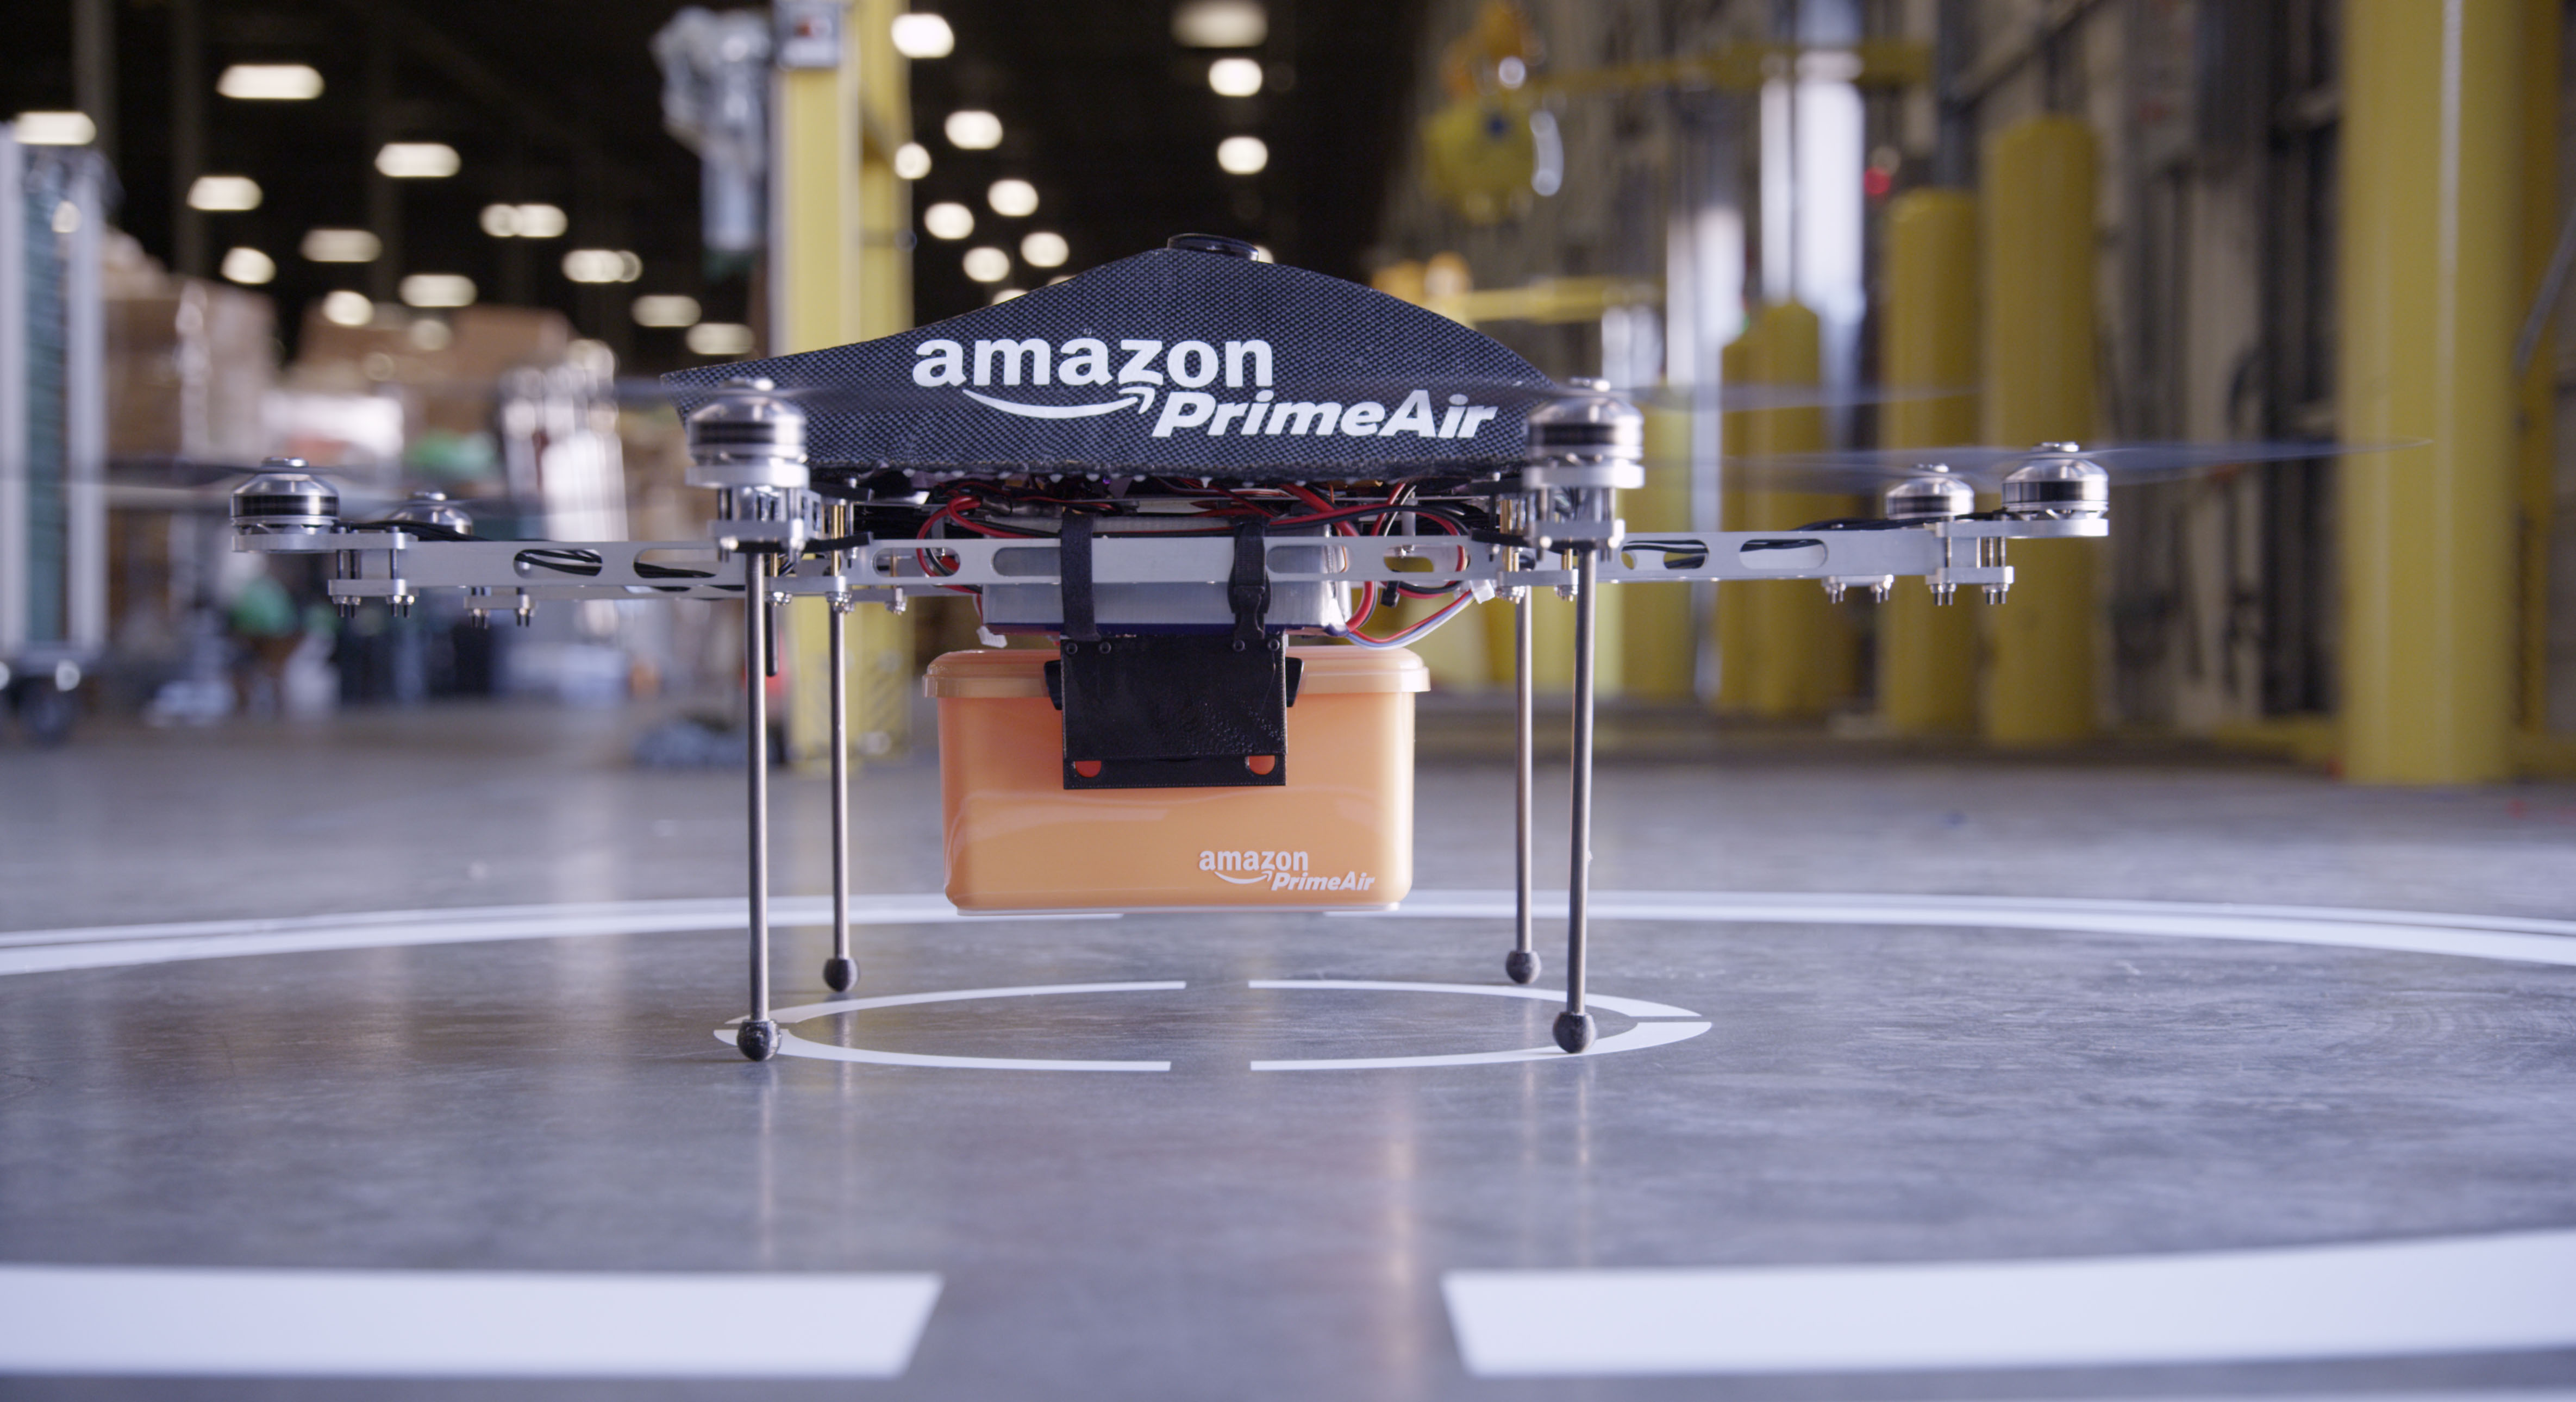 Drones, sharing economy delivery & revamped postal services: Distribution experiences disruption